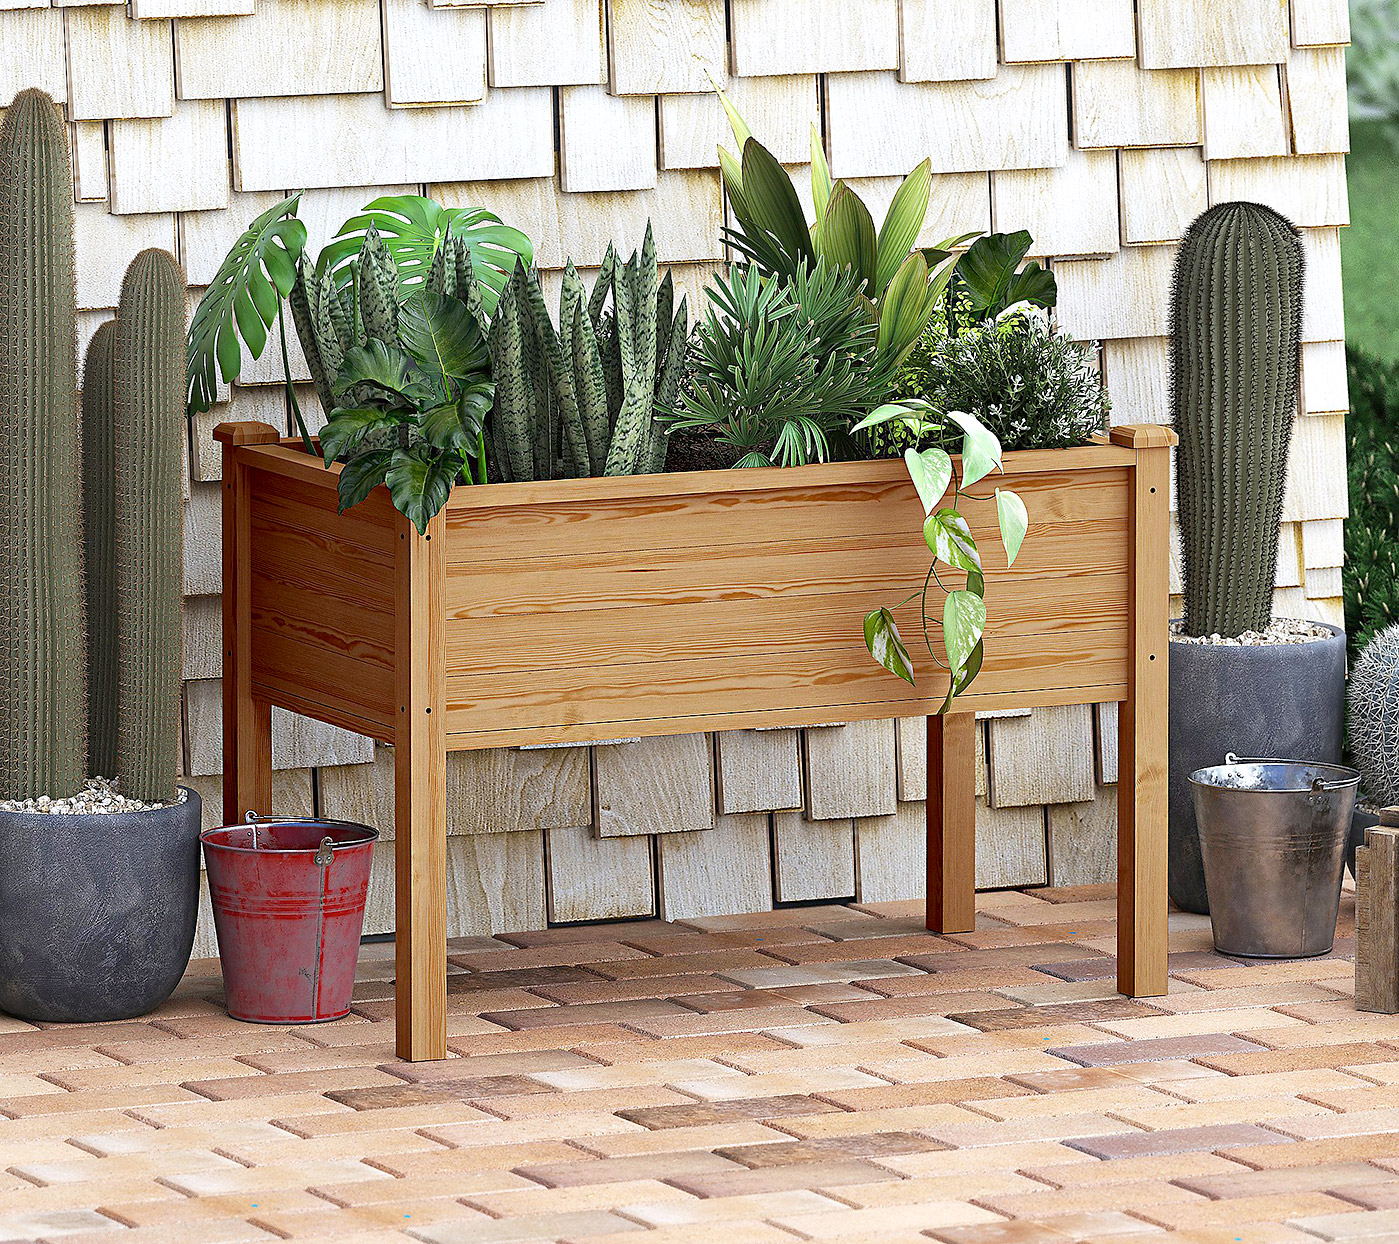 The Best Raised Garden Beds to Buy Right Now | Martha Stewart on Simple Small Backyard Ideas id=44924